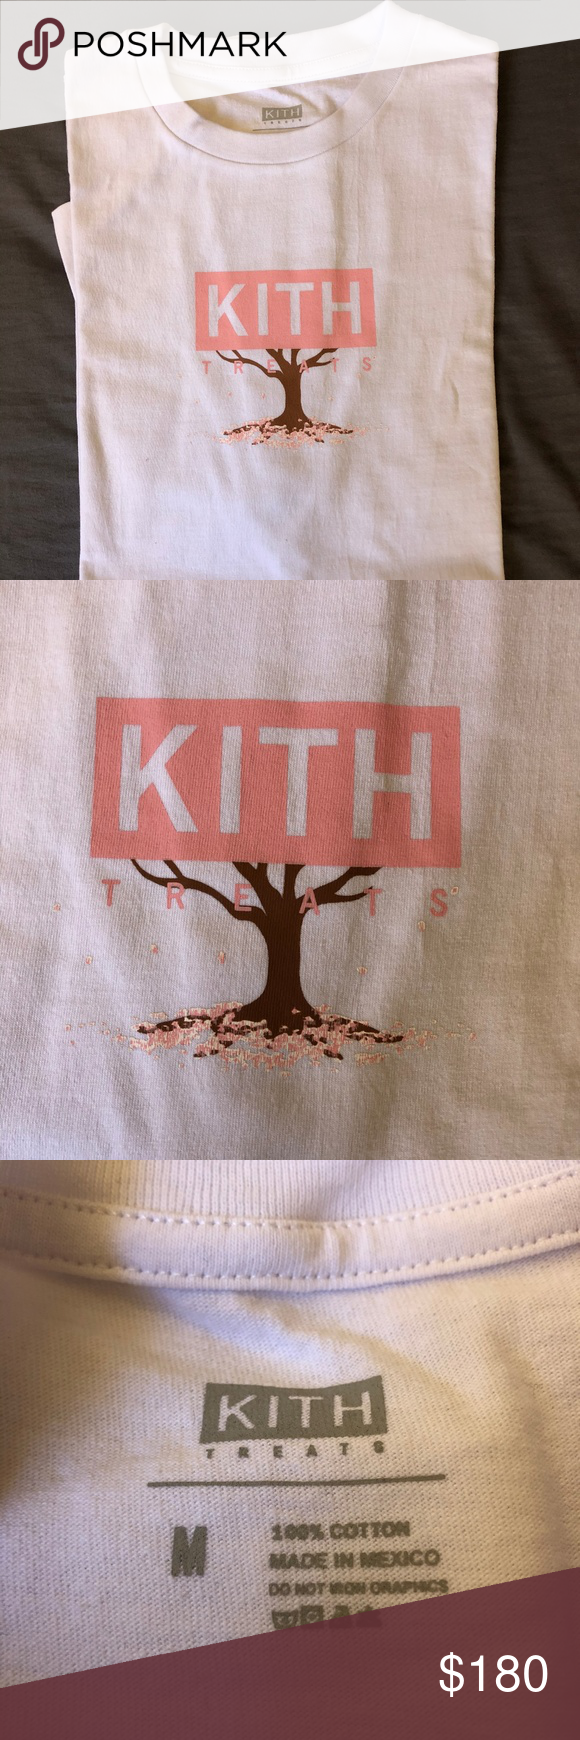 Kith Treats Tokyo The Hanami Tee White Kith Treats Tokyo The Hanami Tee White Kith Shirts Tees Short Sleeve Kith Clothes Design Tees